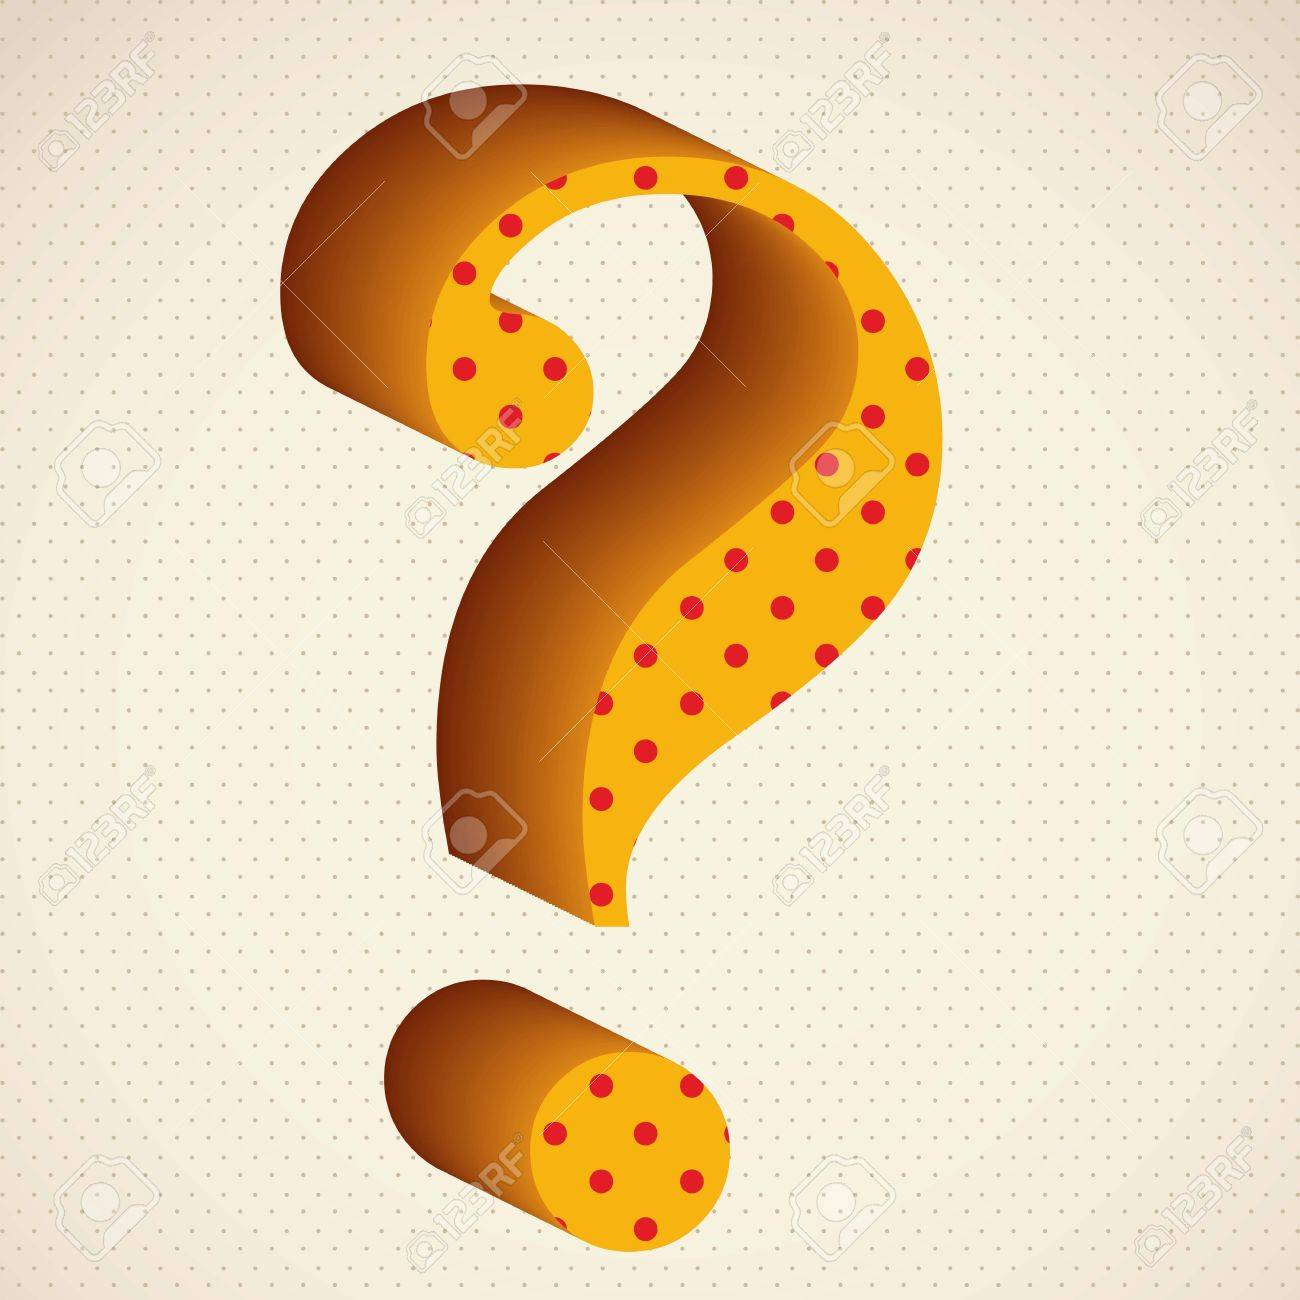 Icon of question, question mark silhouette with dots, vector illustration Stock Vector - 17004322